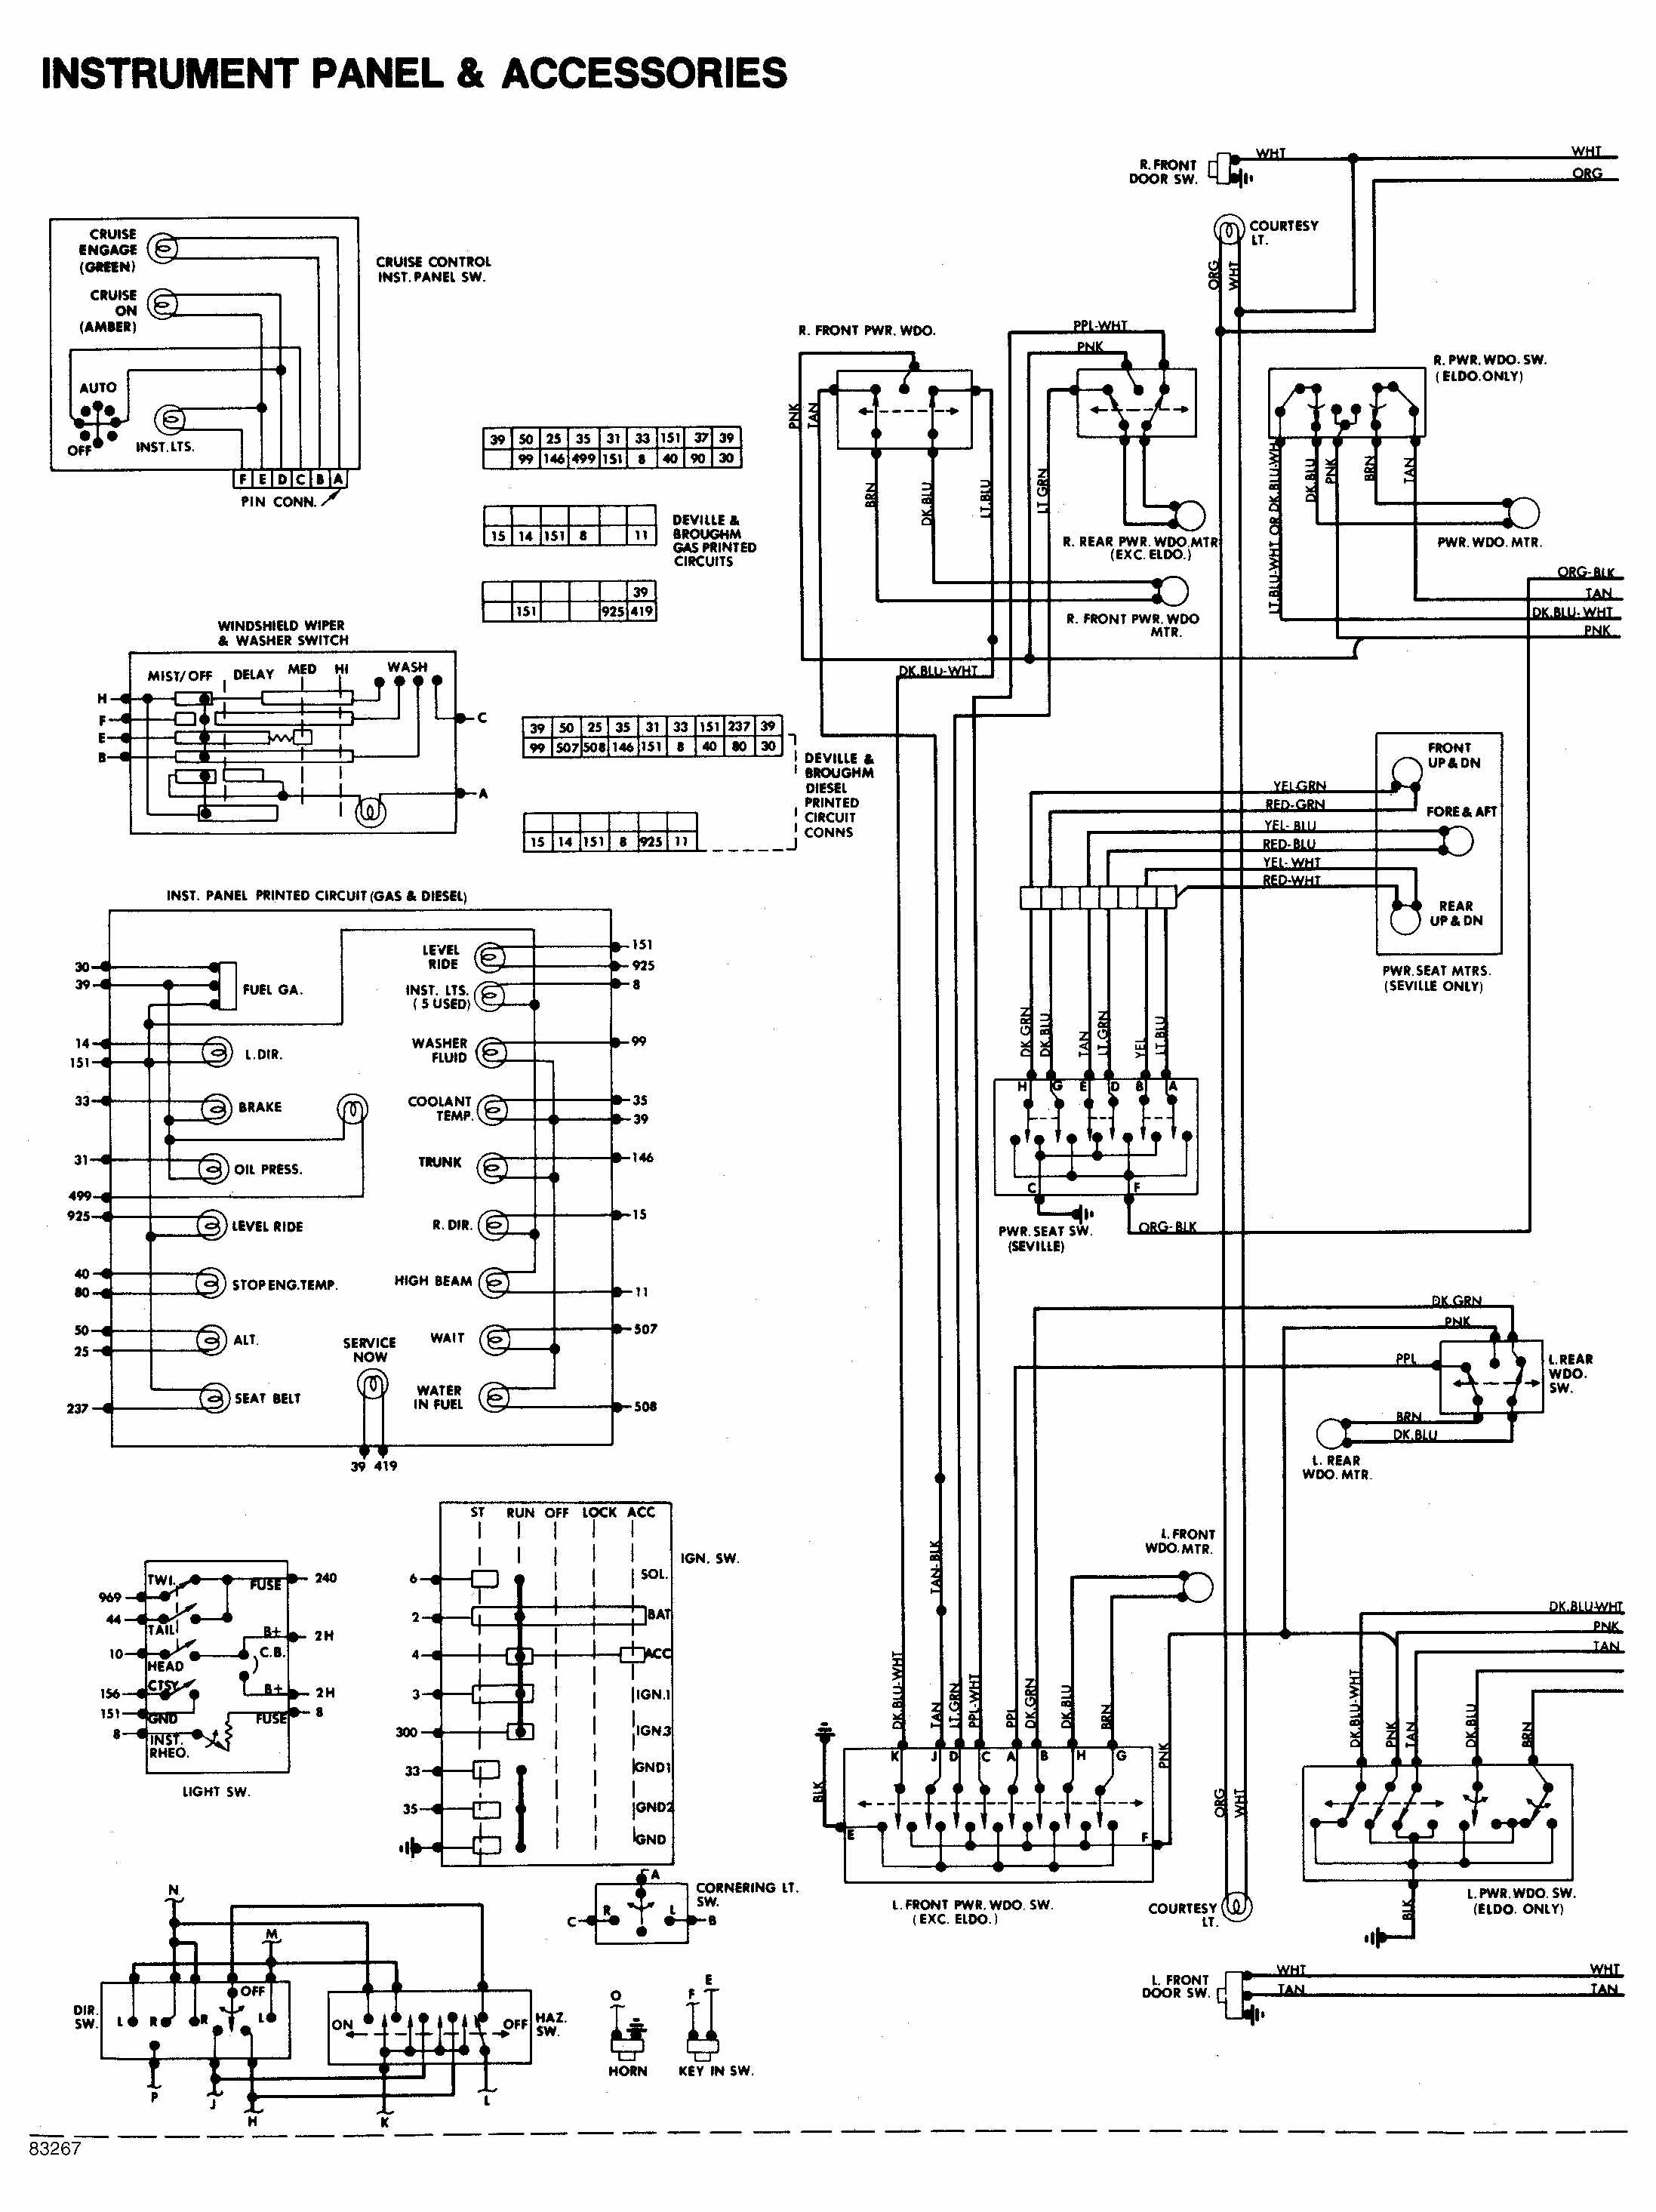 instrument panel and accessories wiring diagram of 1984 cadillac deville chevy diagrams  at nearapp.co